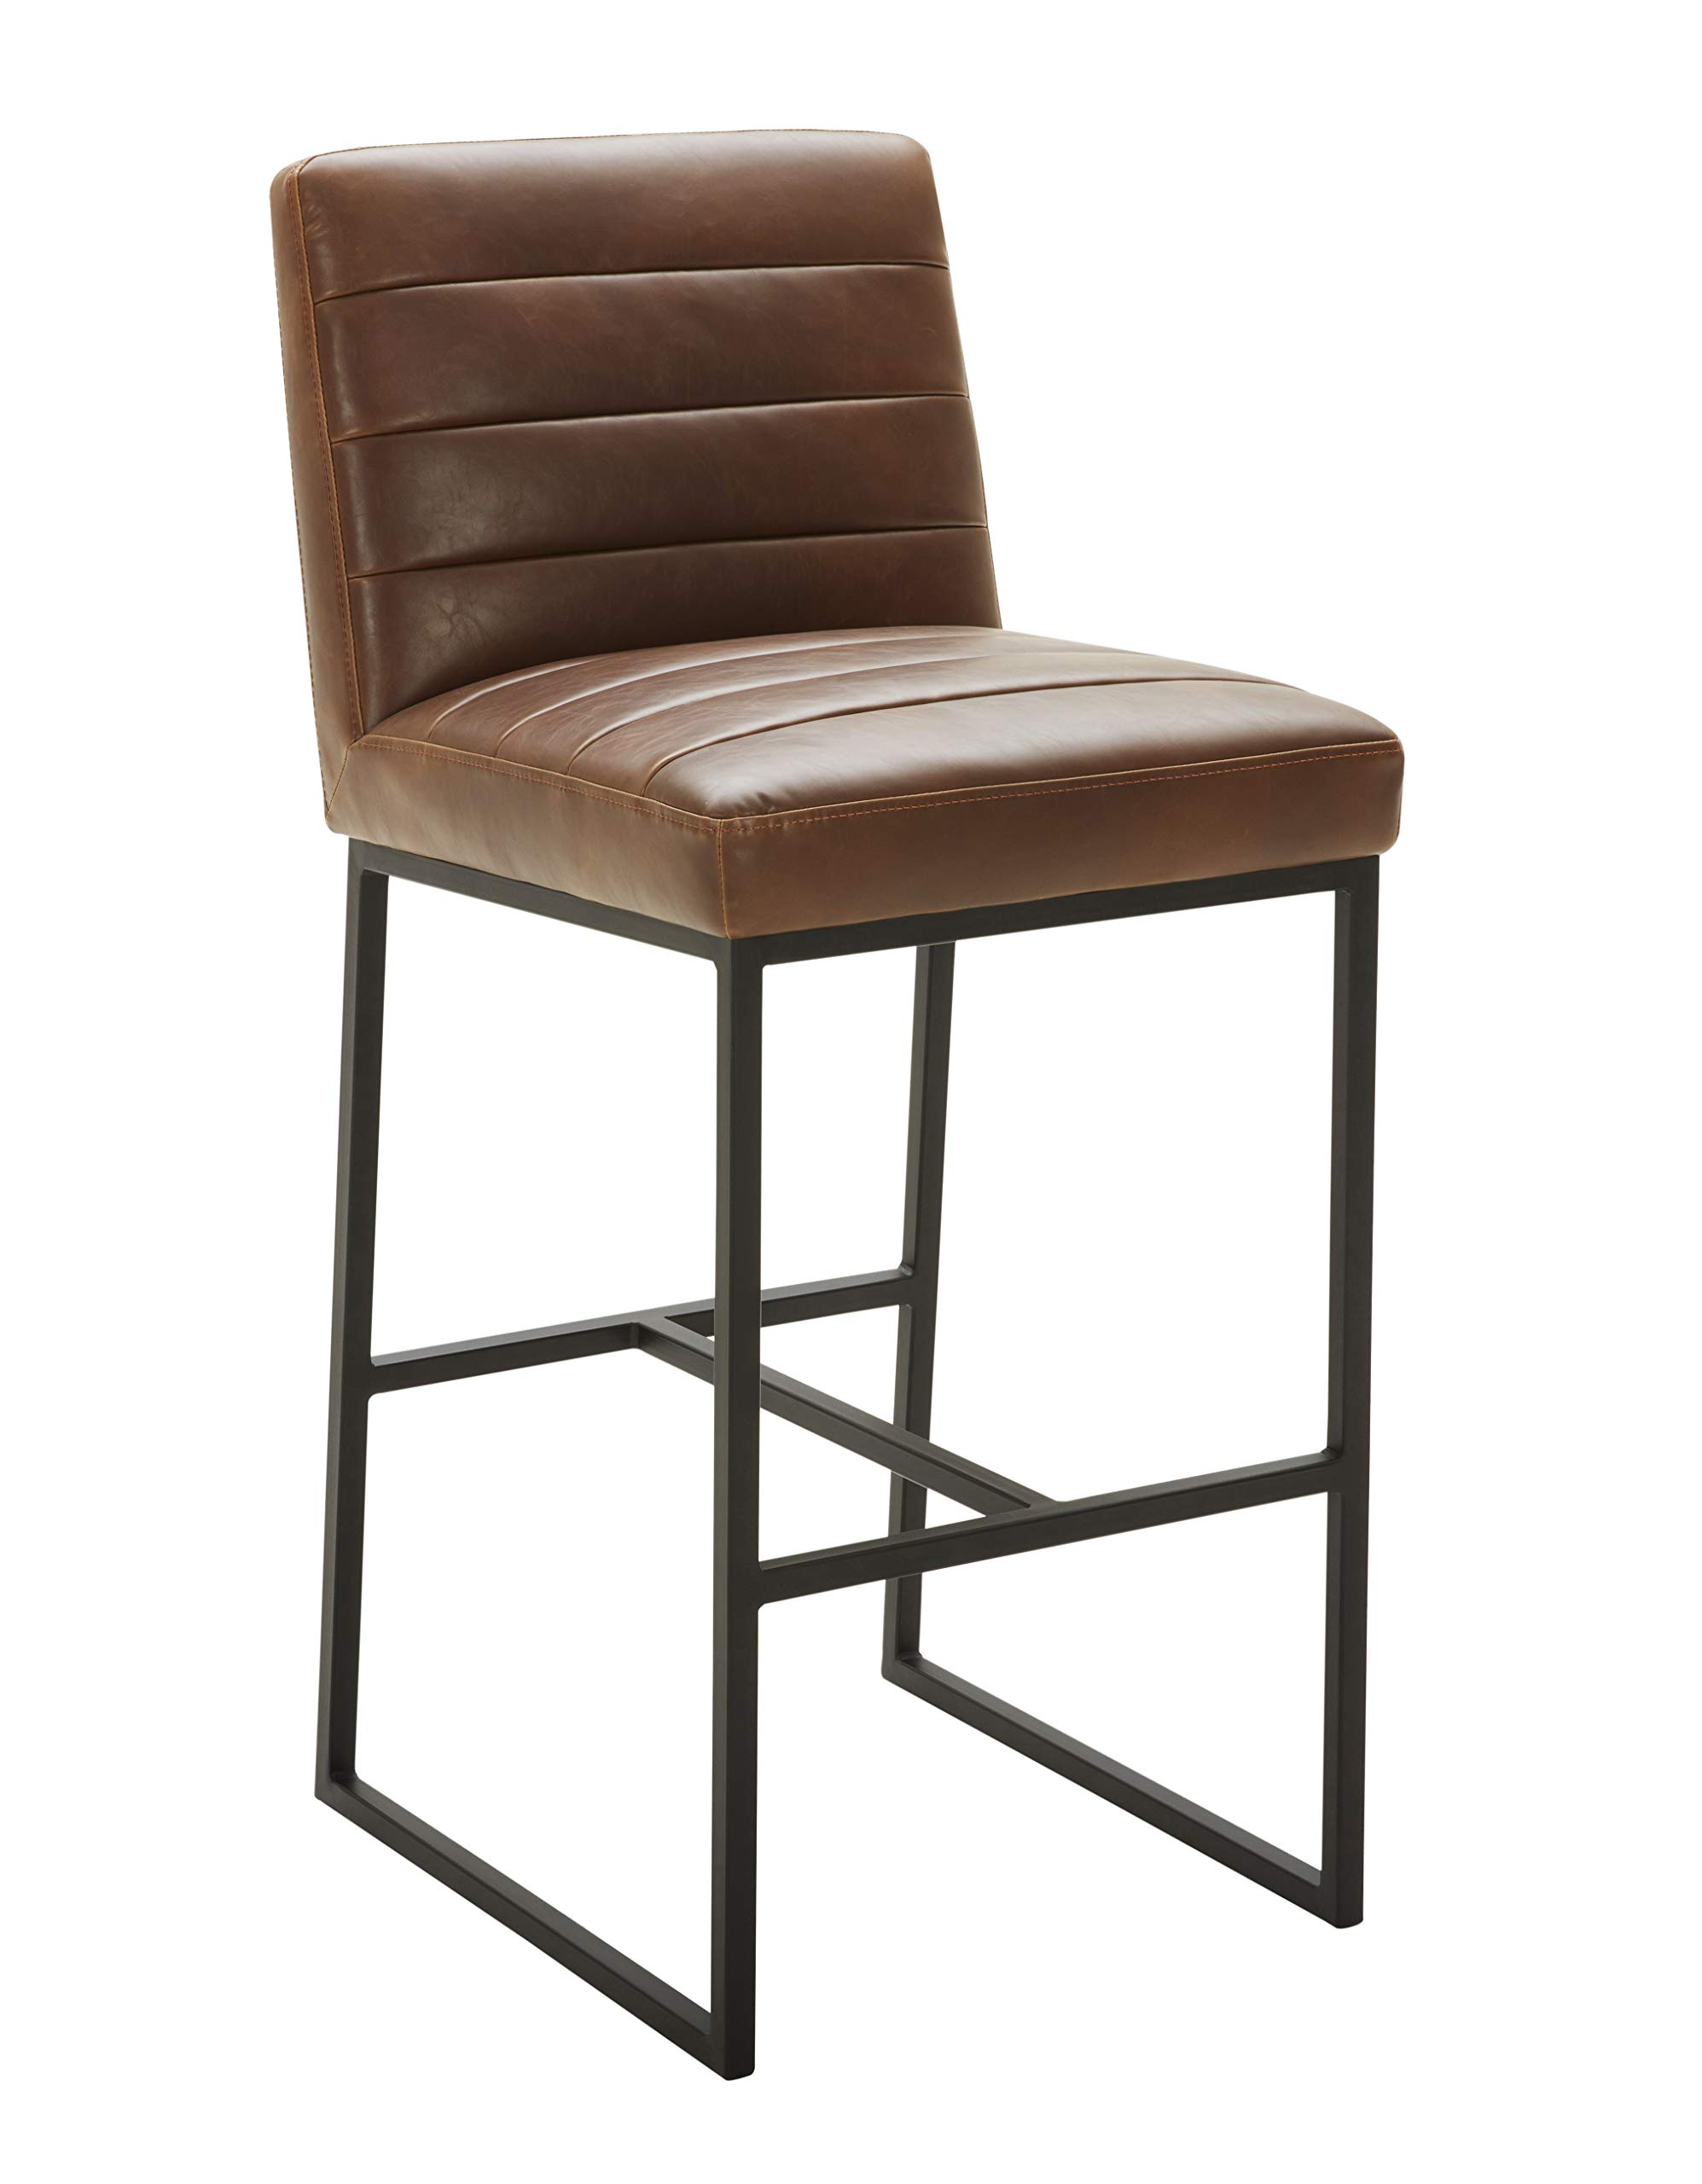 Rivet Decatur Modern Kitchen Counter Bar Stool with Back, 41''H, Brown by Rivet